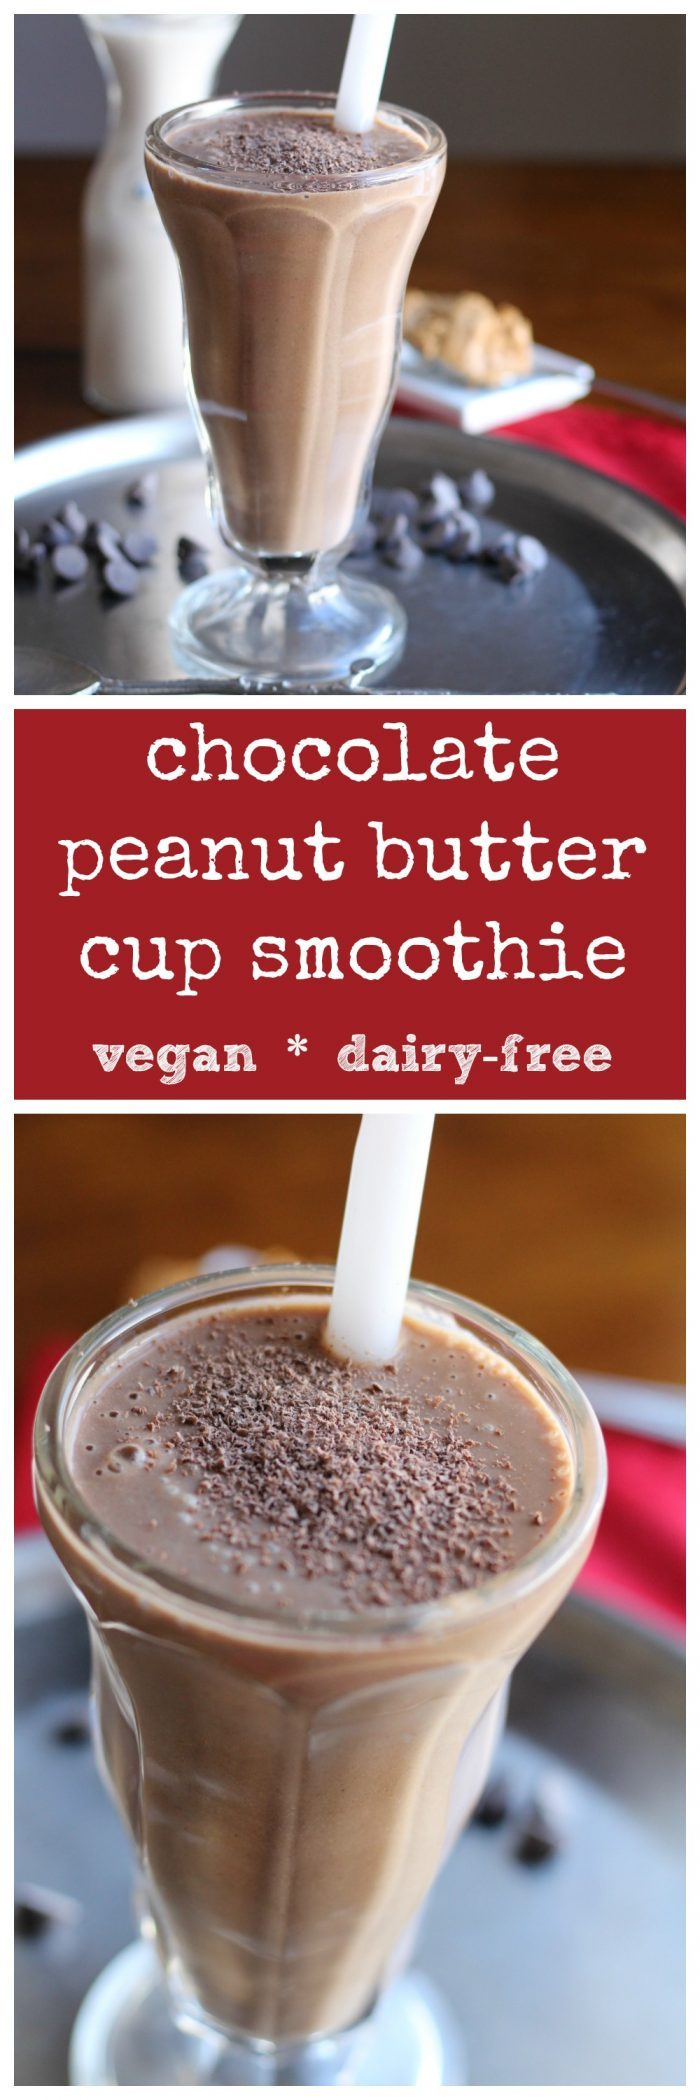 Chocolate peanut butter cup smoothie: A delicious breakfast for breakfast, a snack, or dessert! Vegan & dairy-free | cadryskitchen.com